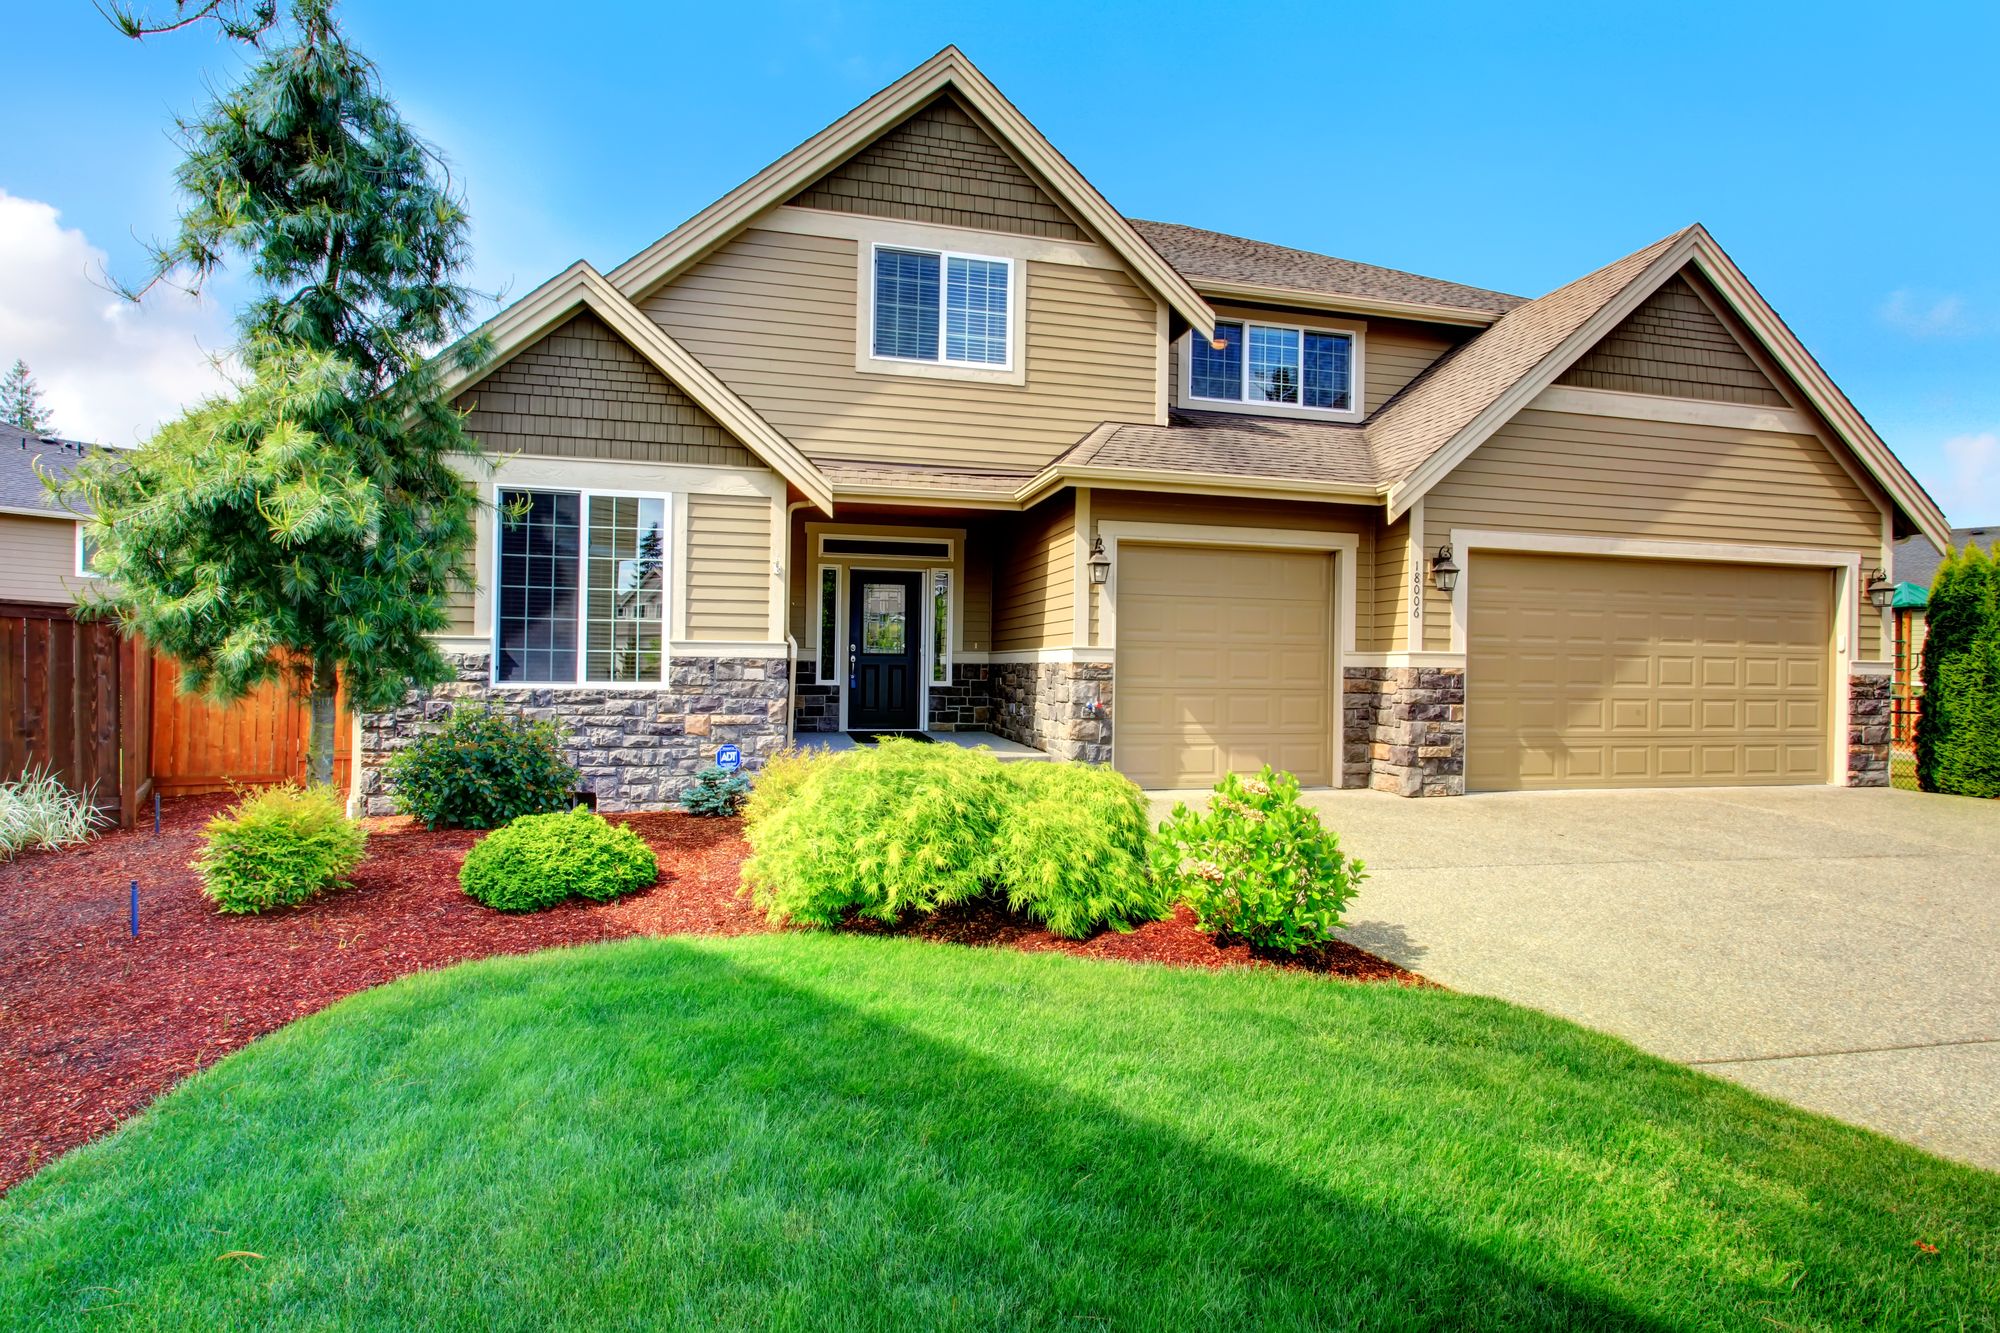 Luxury house ith beautiful curb appeal